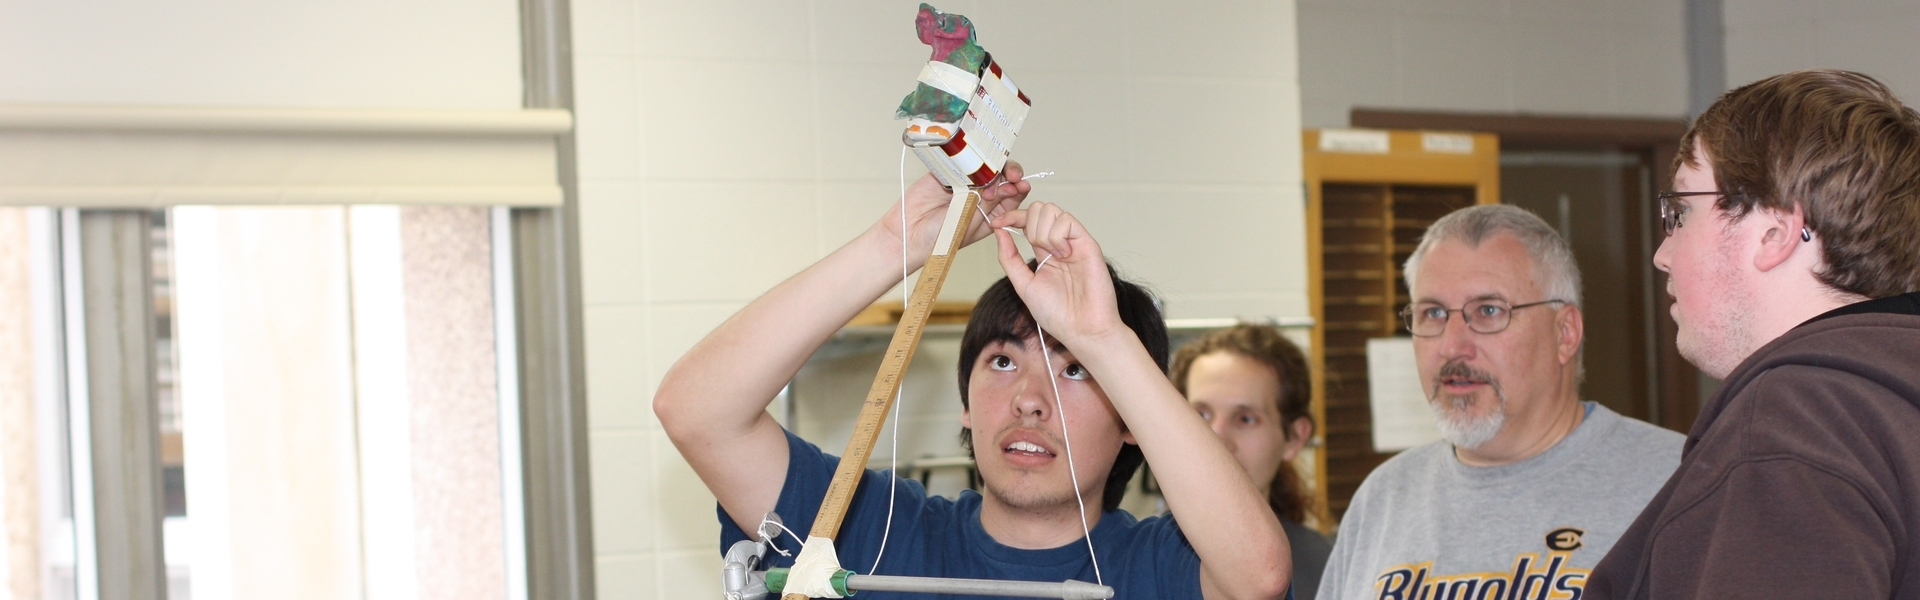 Students exploring physics and astronomy in a laboratory setting.